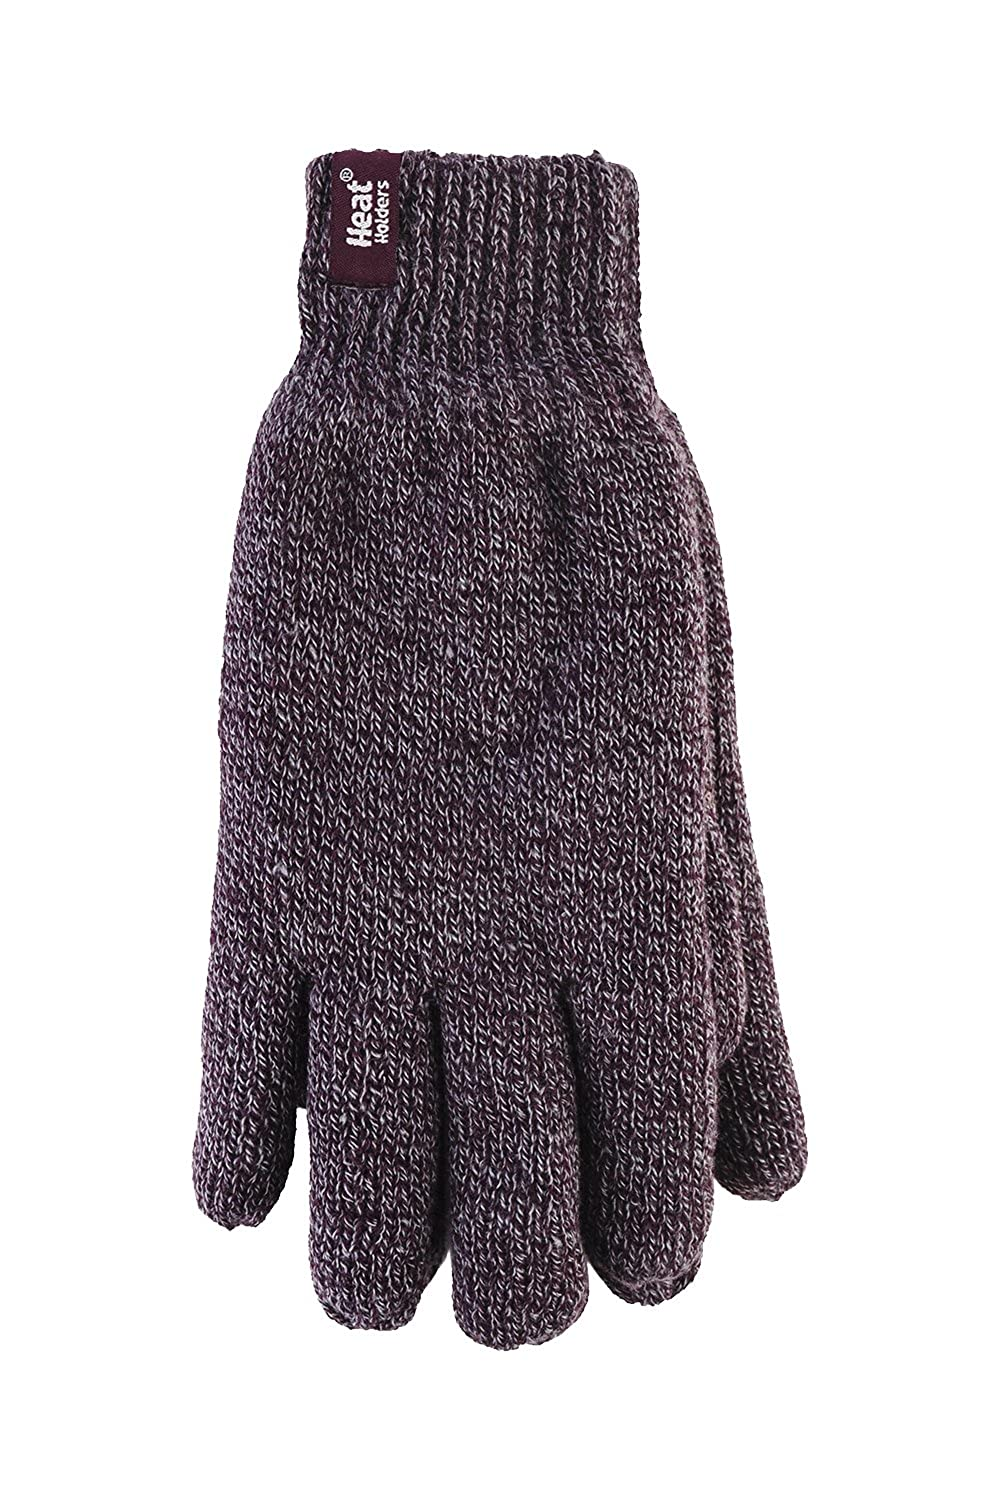 Heat Holders Mens Thermal Heat Weaver Knitted 2.3 tog Gloves